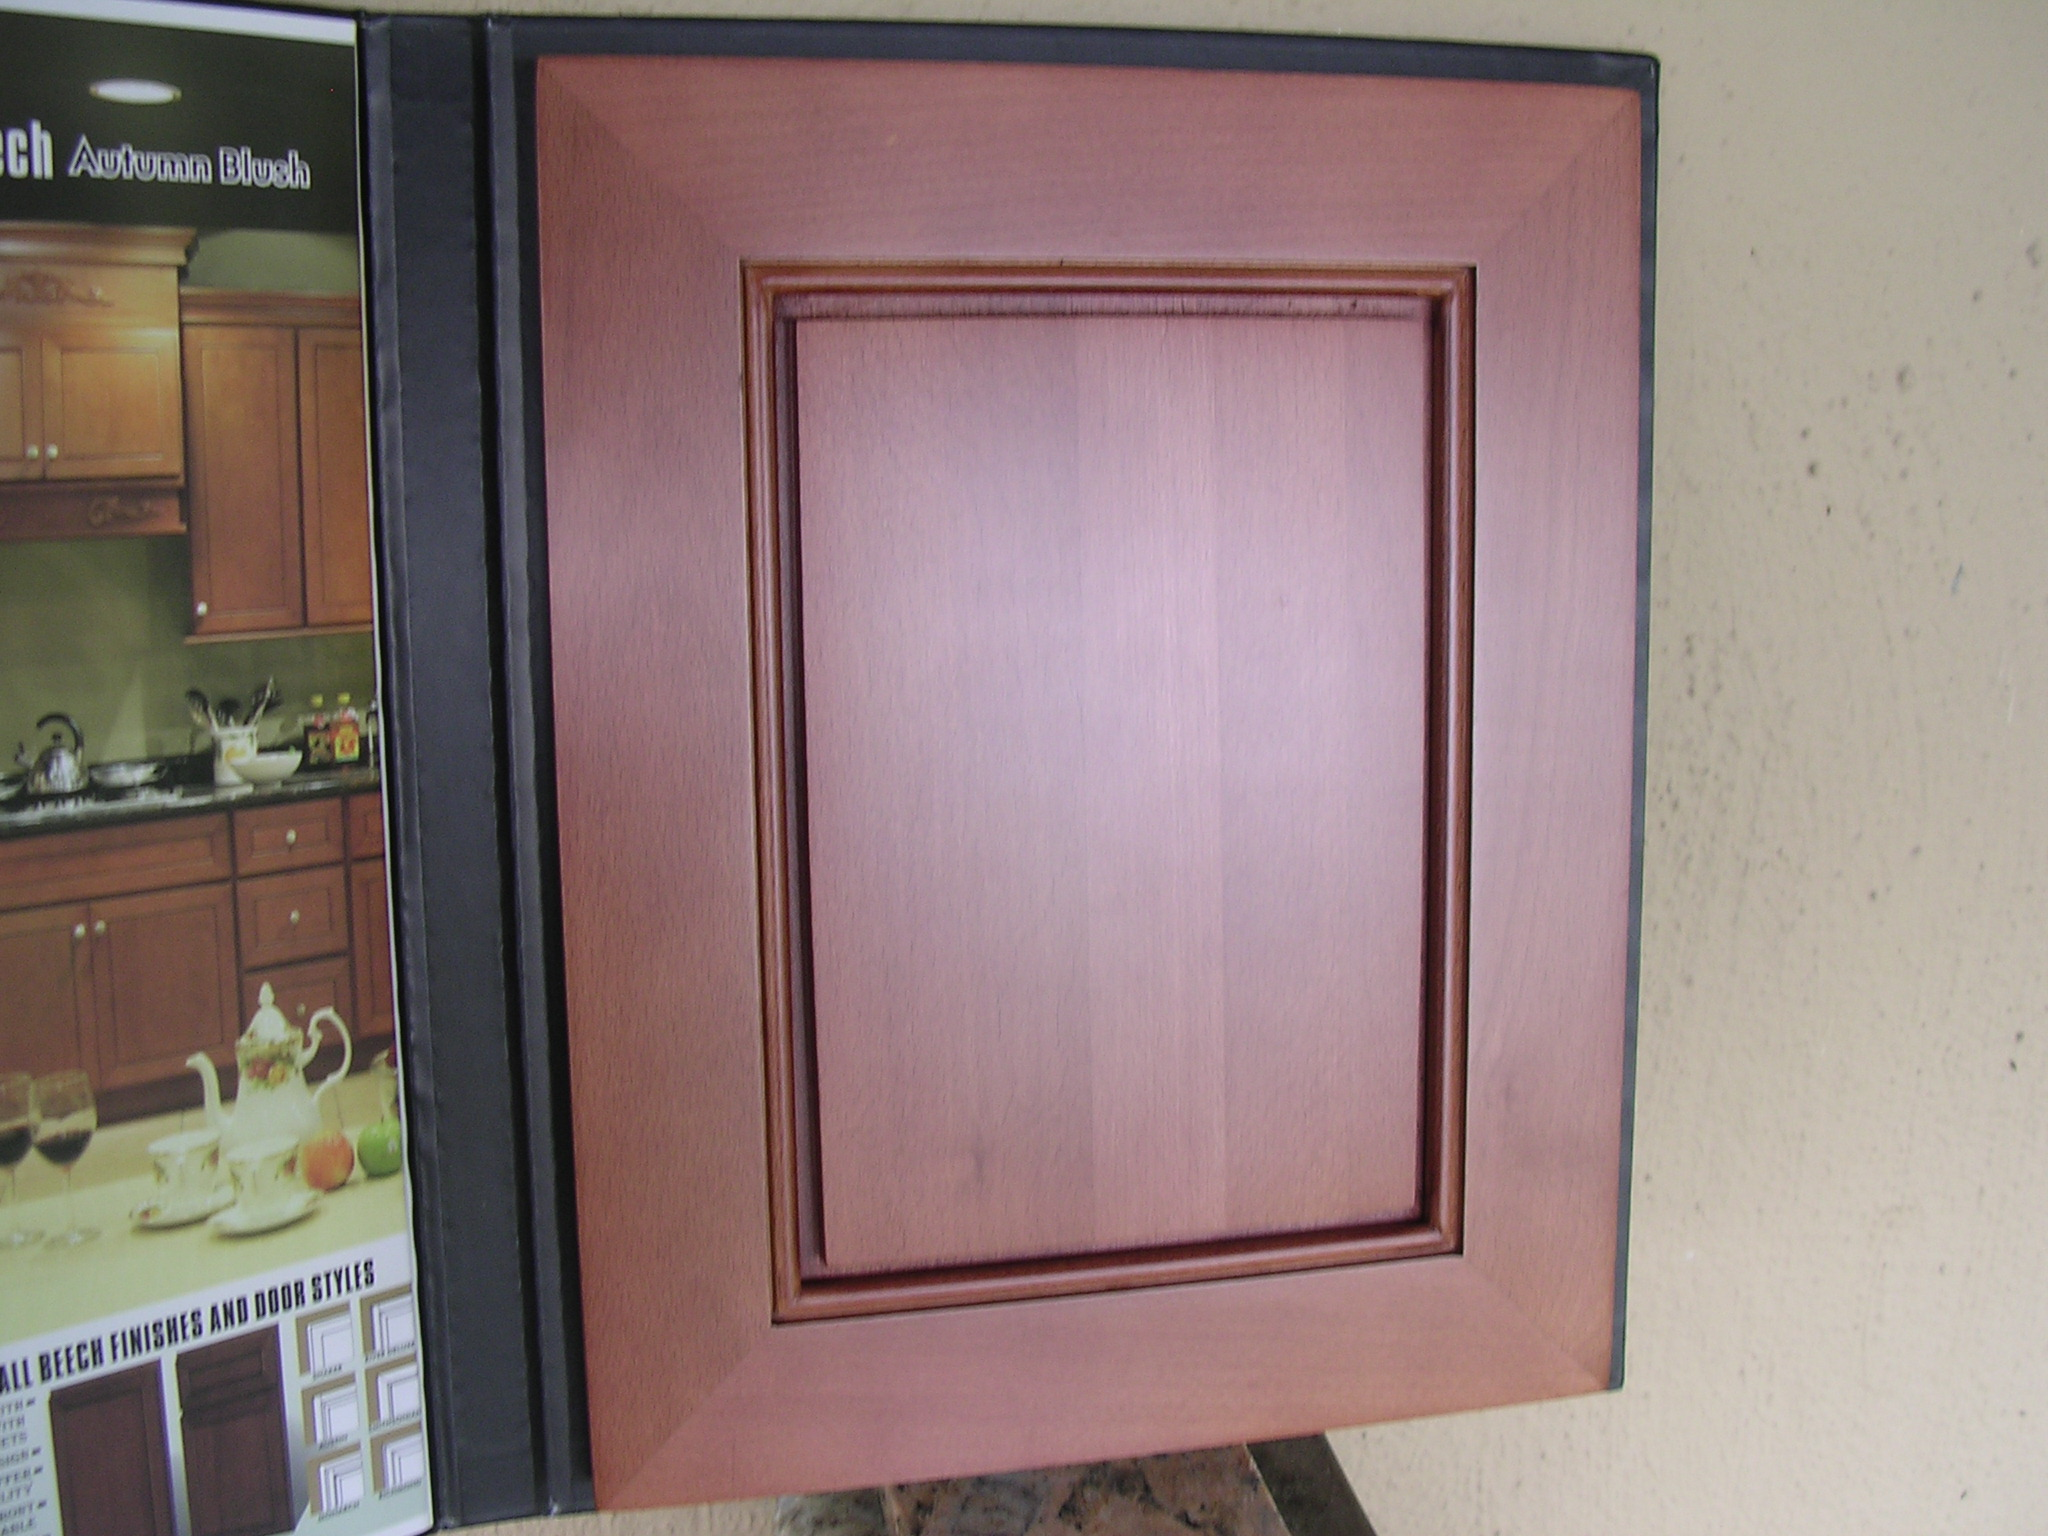 Beech Autumn-Blush Kitchen Cabinets (BAS)